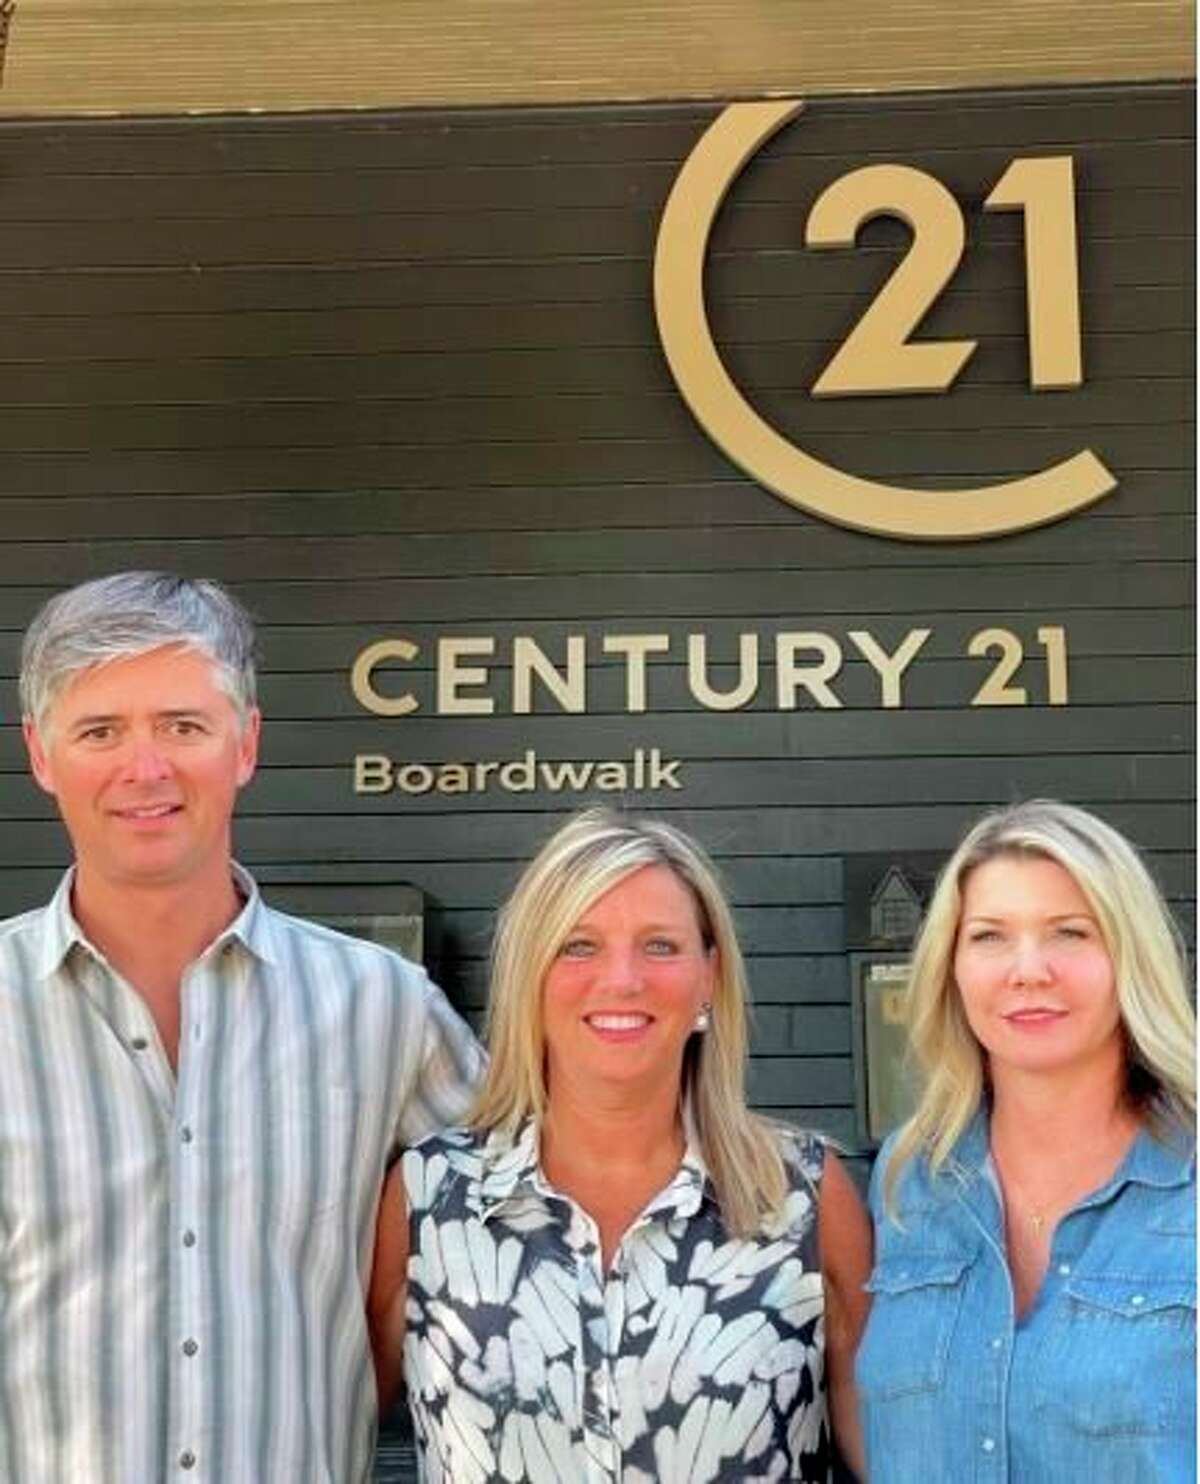 Pictured are Brad Platt, broker/owner and co-founder ofCentury 21 Northland; Suzanne Riley,broker/owner andformer founder ofCentury21 Boardwalk; and Meagan Luce, associate broker and mentor/coach atCentury21 Northland.Century21 Northland isexpanding to 14 office locations, joining forces with Century 21 Boardwalk.(Courtesy photo)